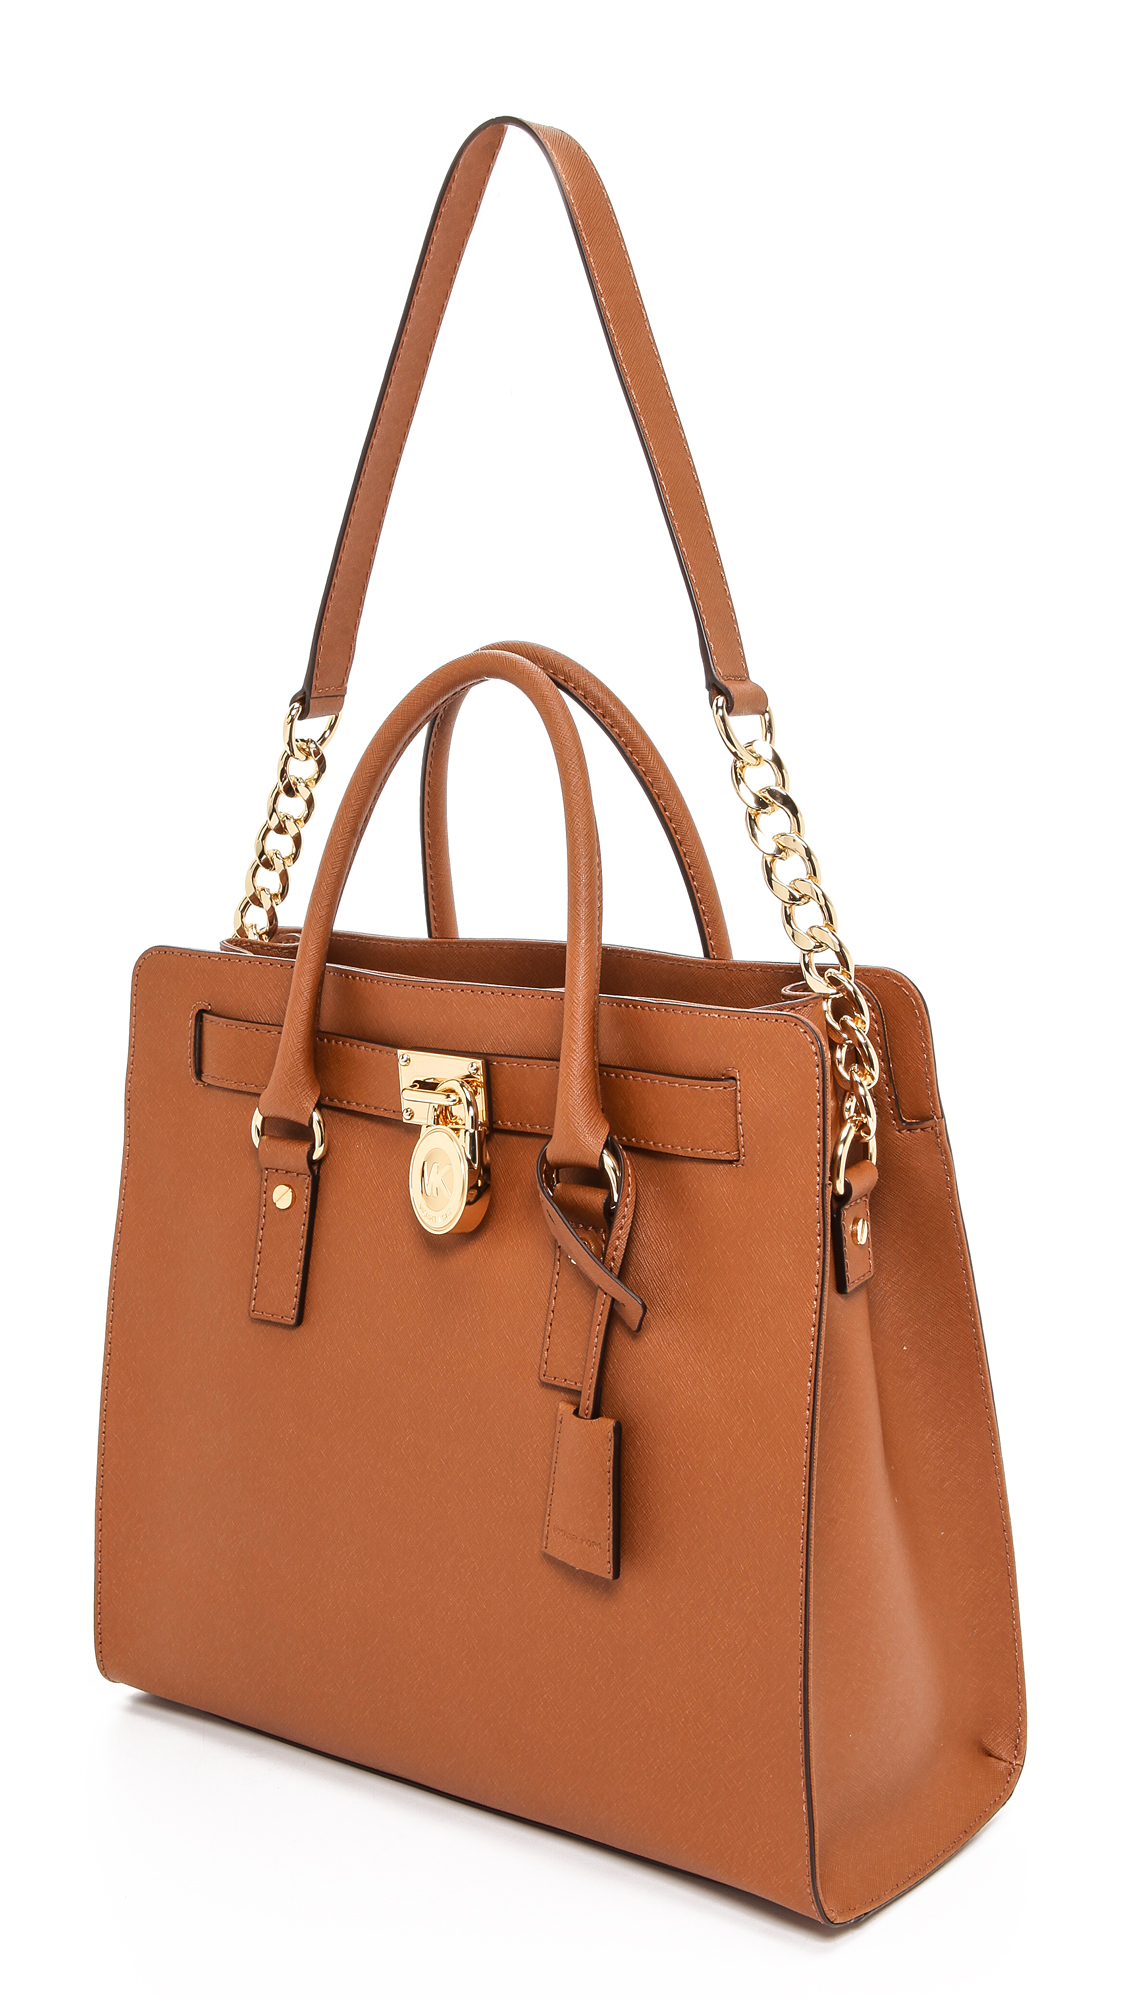 2ce1375de60a Lyst - MICHAEL Michael Kors Hamilton Large N S Tote Luggage in Brown